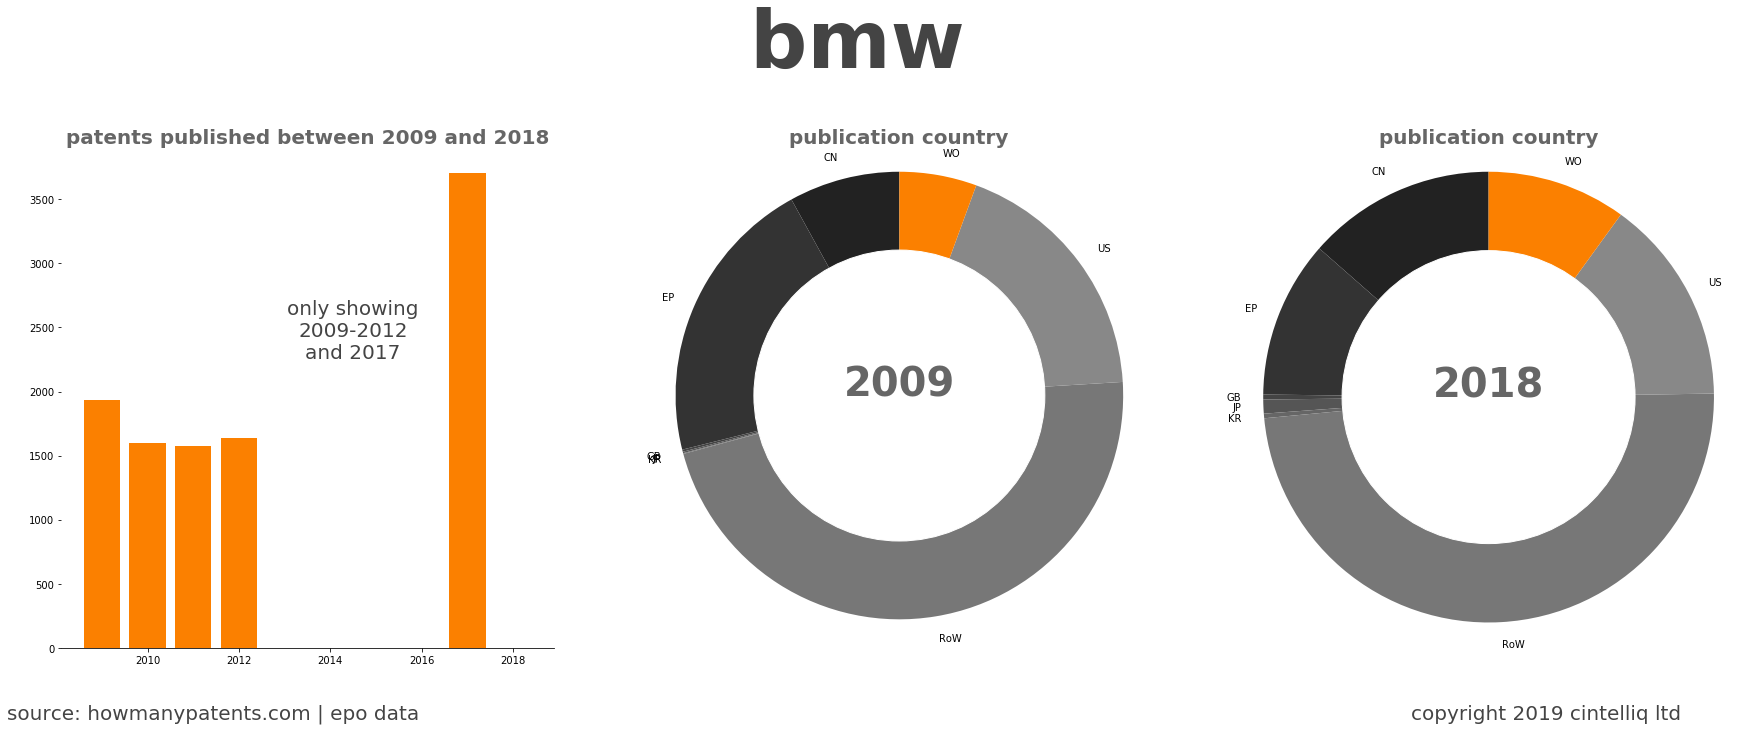 summary of patents for Bmw